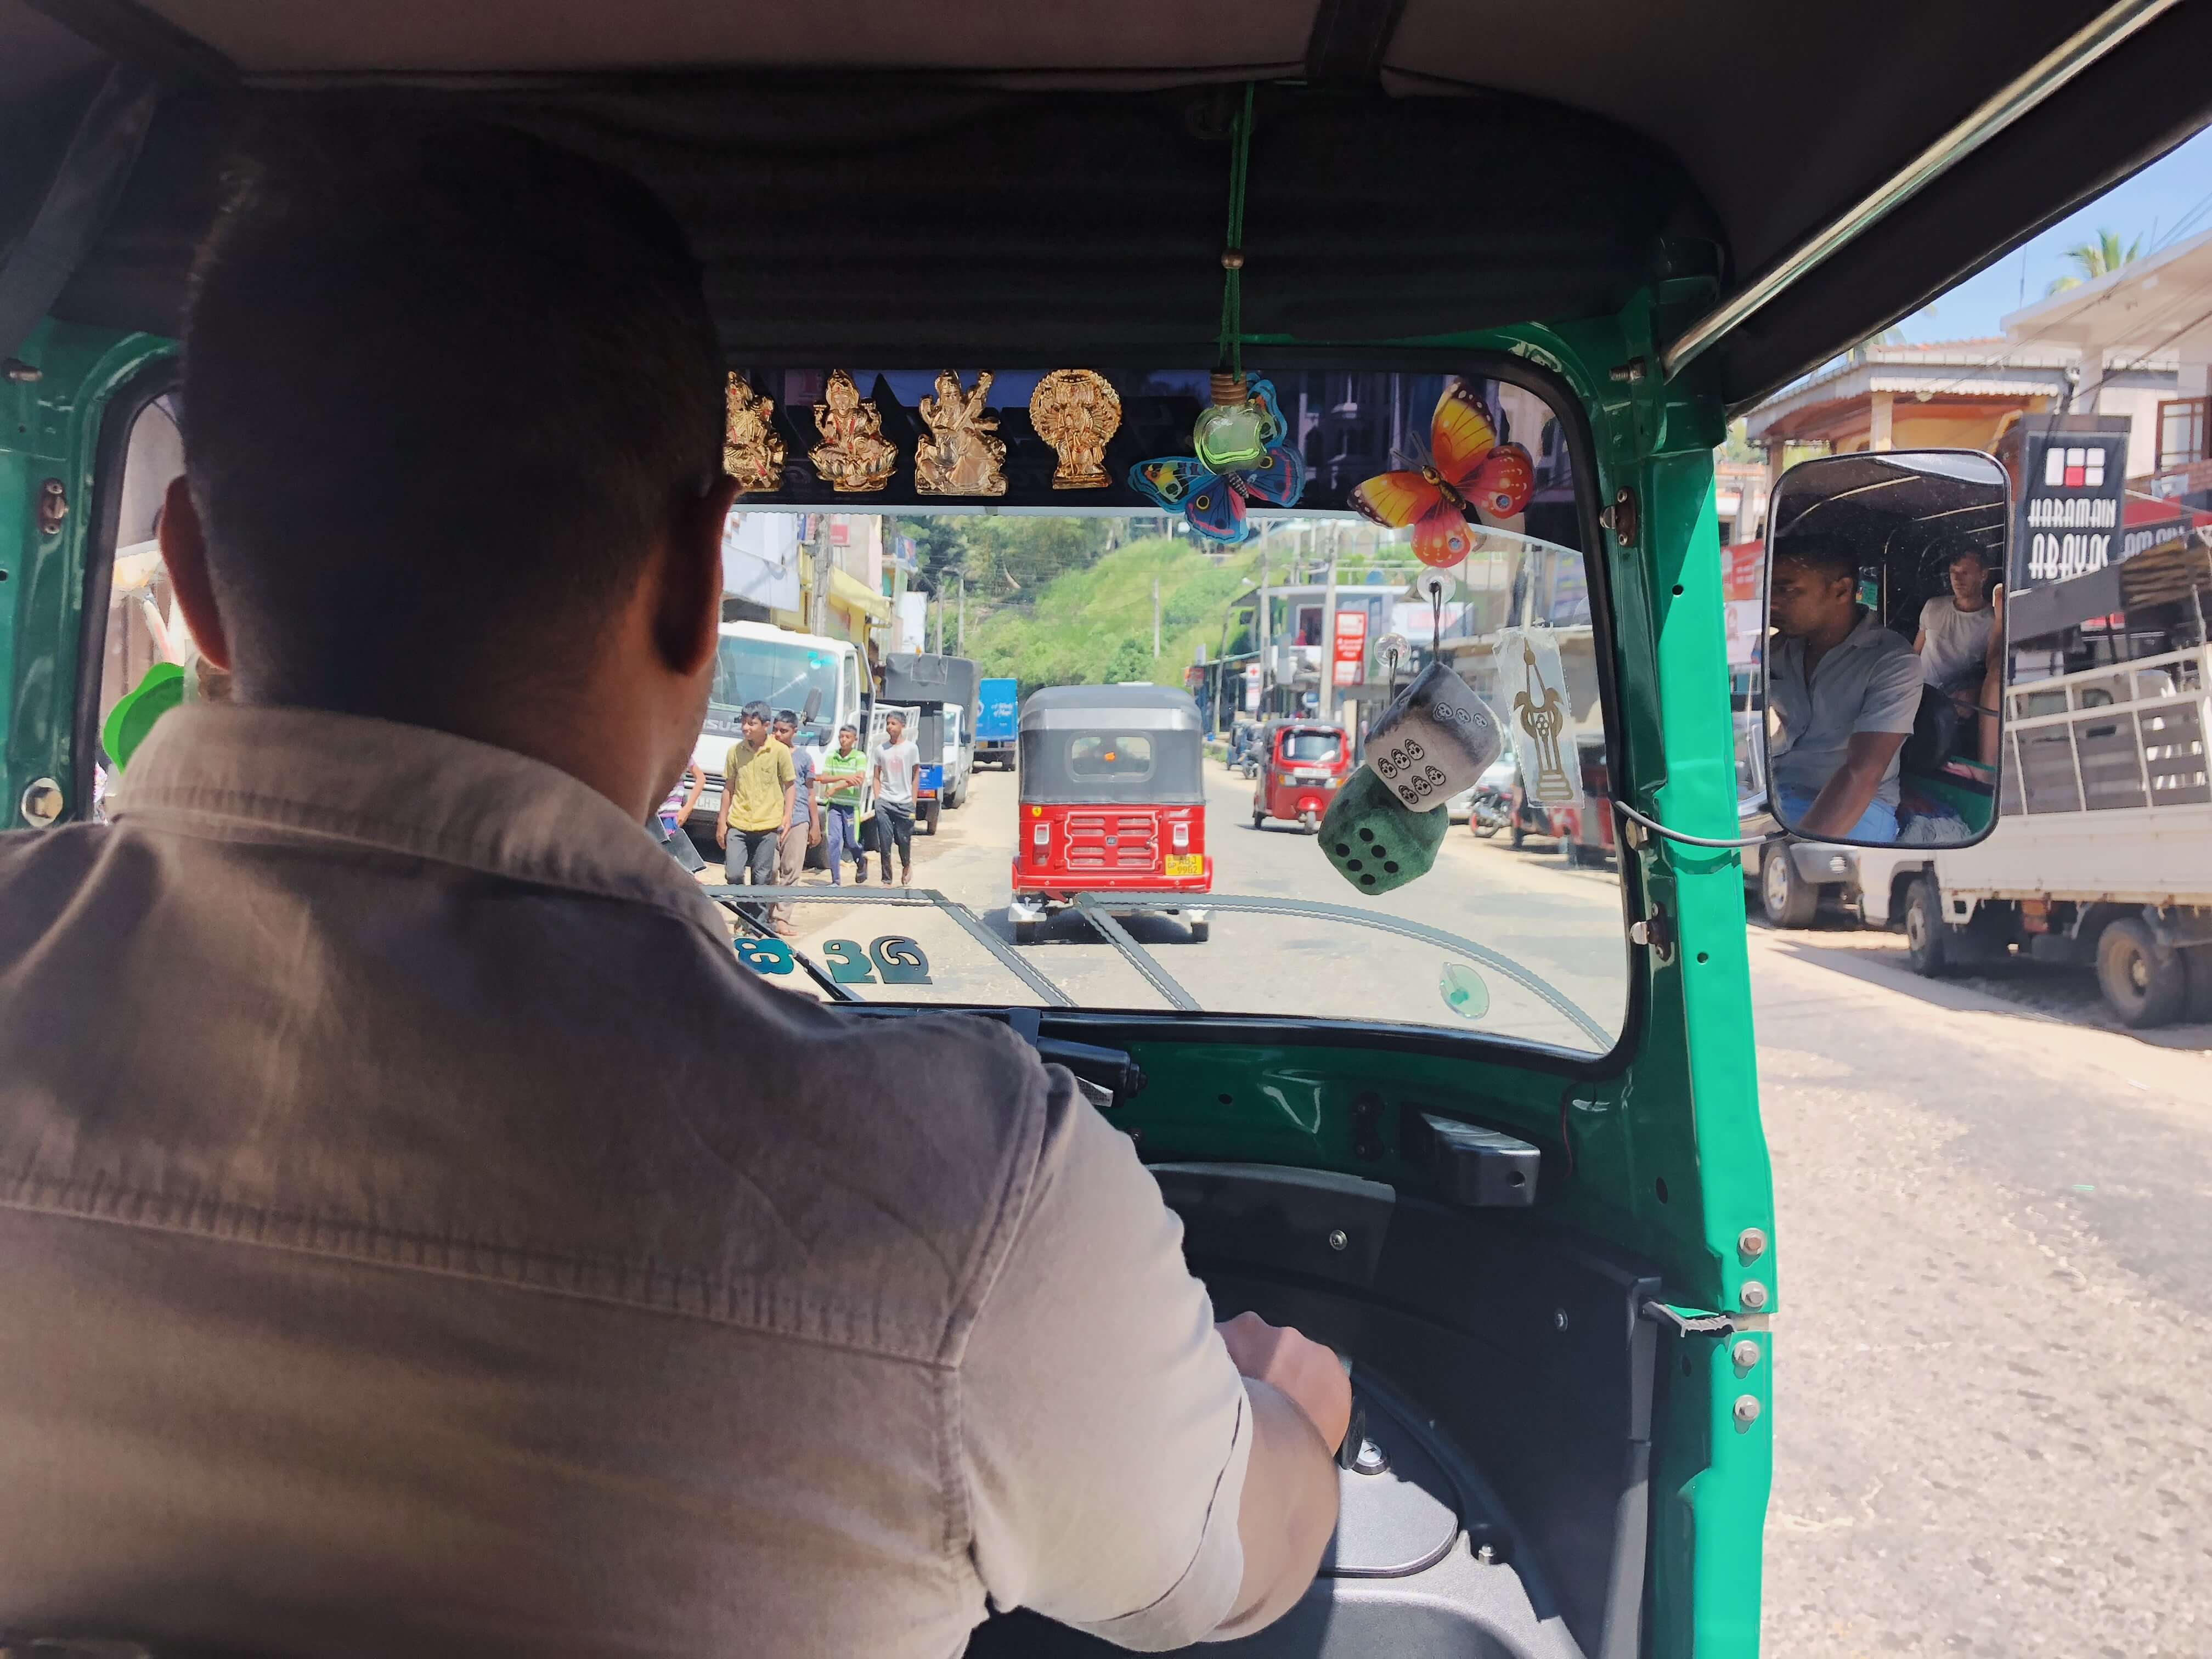 Riding the local bus in Kandy, Sri Lanka